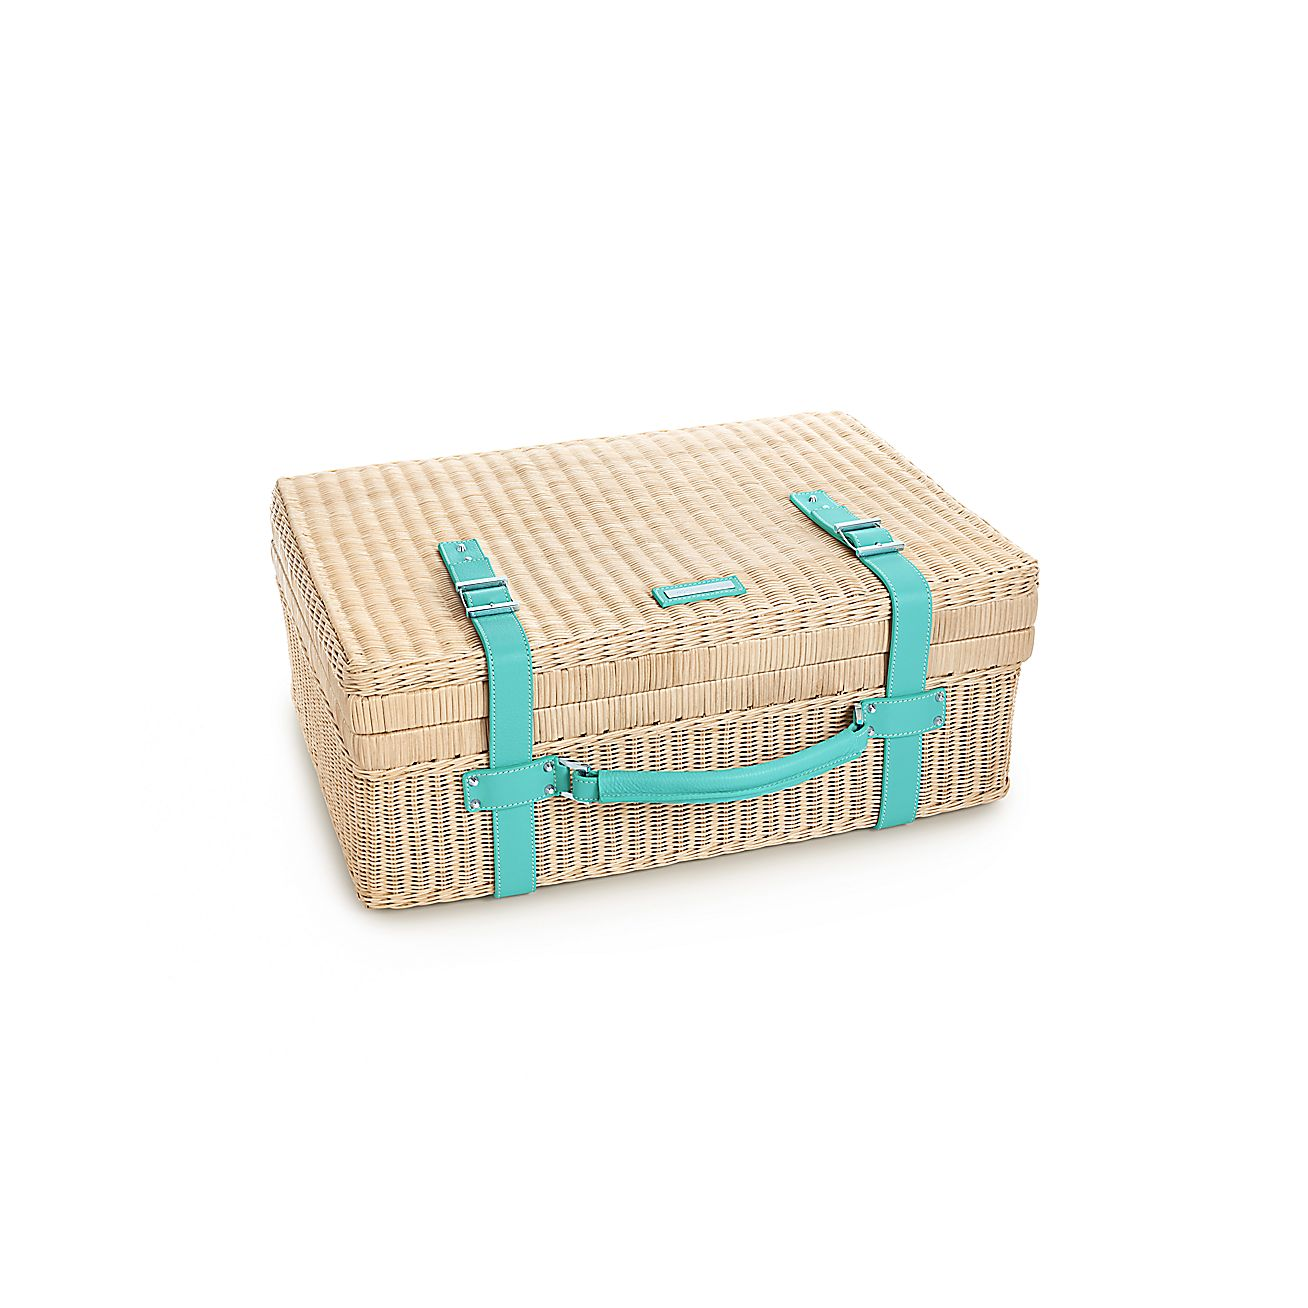 Central Park<br>Picnic Basket